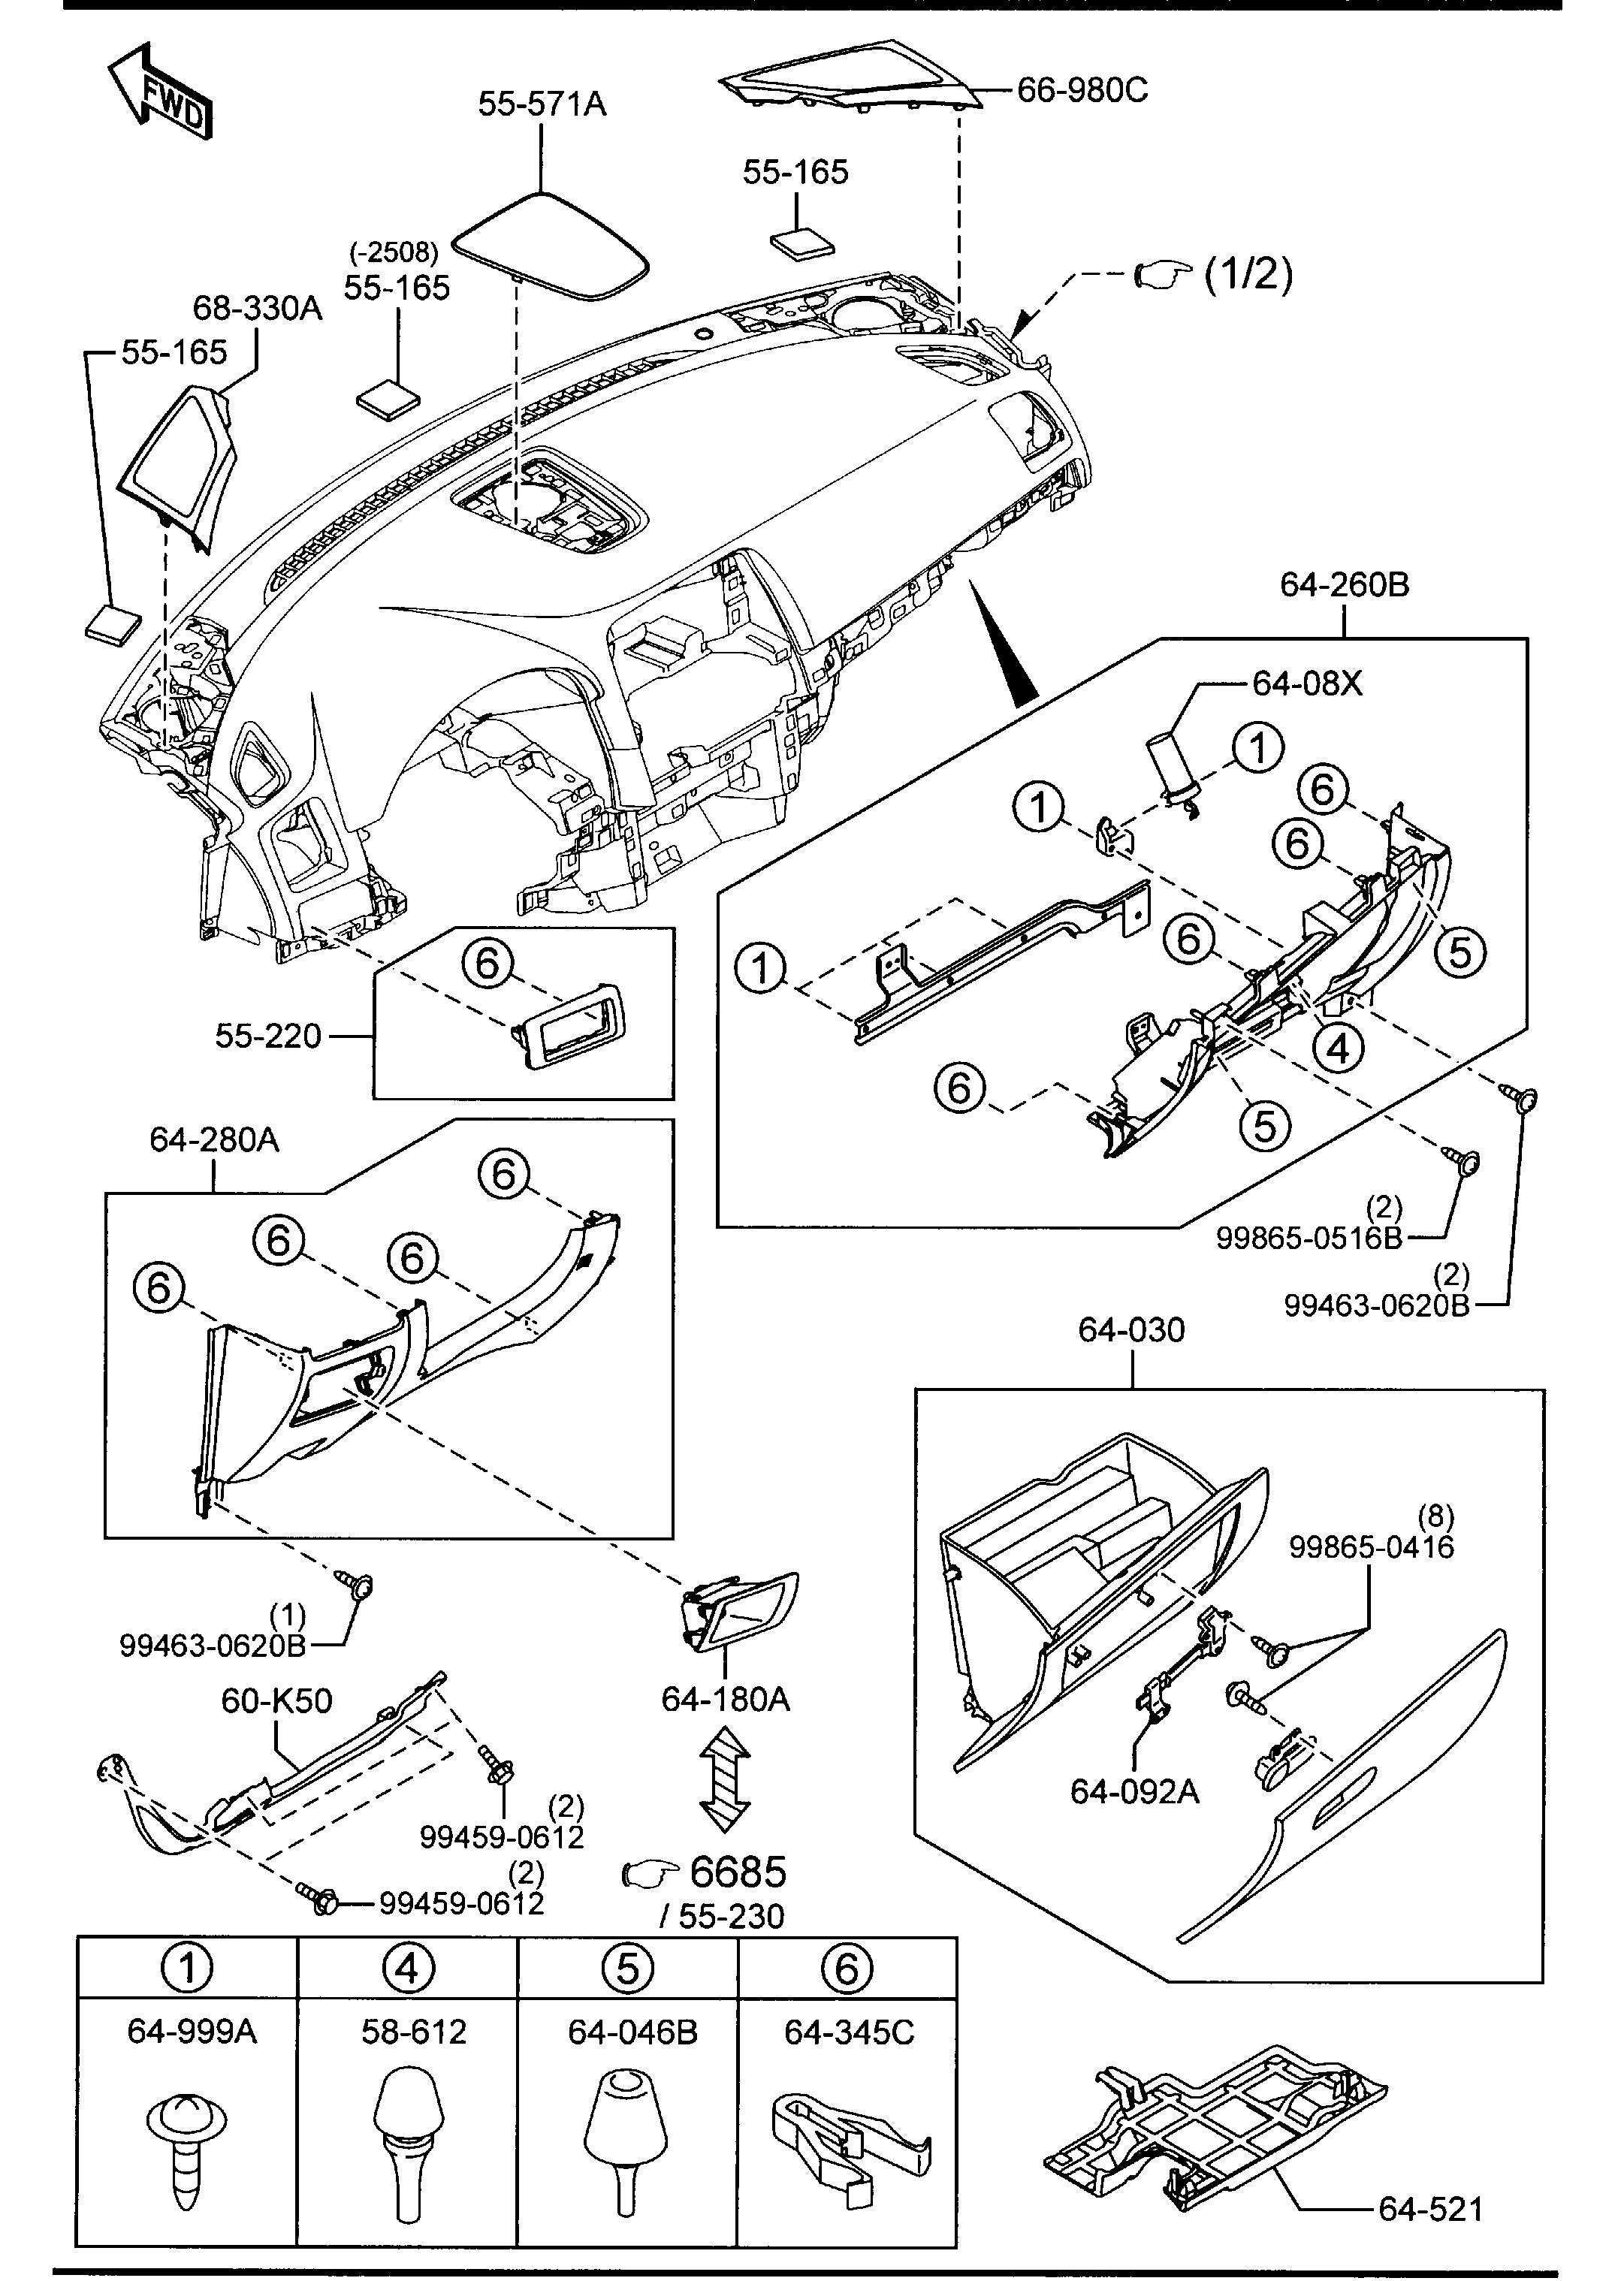 Saab Convertible Electrical Diagram. Saab. Auto Wiring Diagram